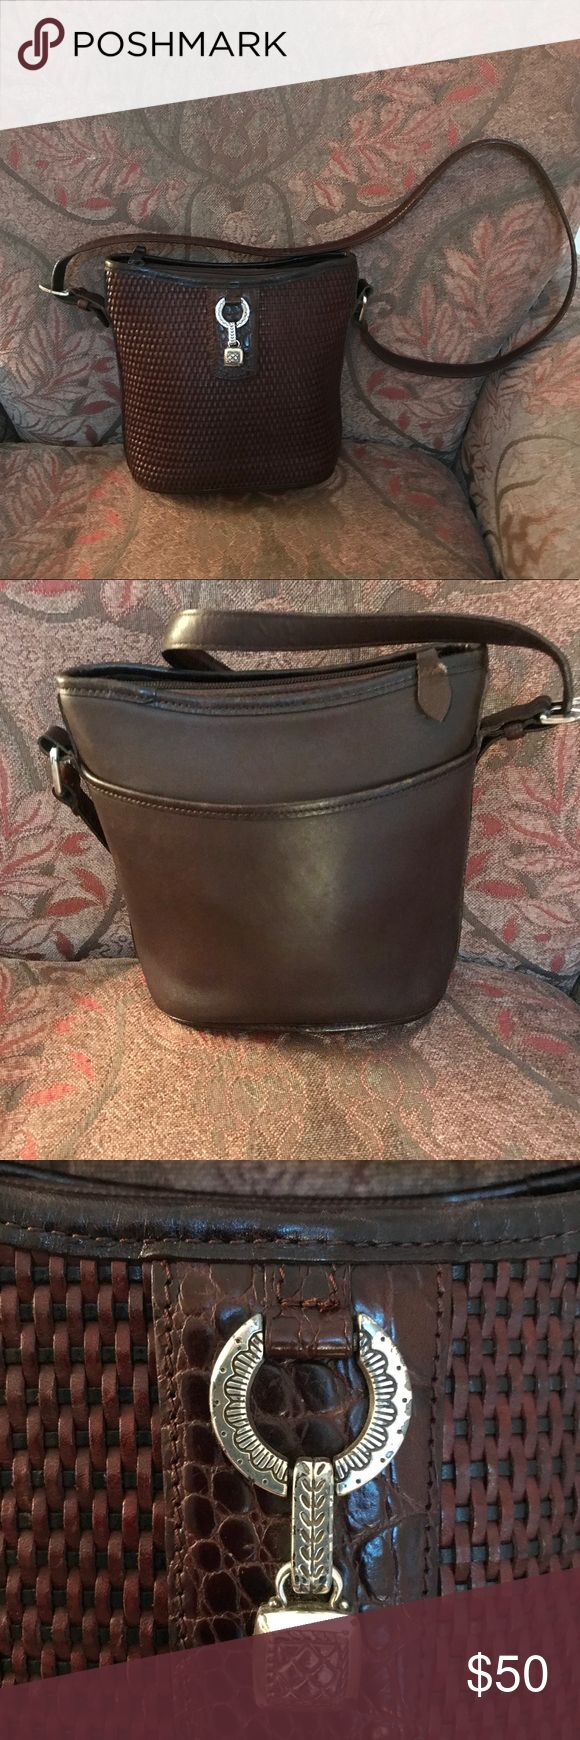 Brighton  Authentic Brown Crossbody Handbag Brighton  Authentic Brown Crossbody Handbag. Beautiful Brighton Leather Brown Crossbody Handbag. Great for the Brighton Fashionista! GUC 🚫🚫Trades, paypal, any questions in the comments regarding price please use the offer button or they will be ignored🚫🚫 Brighton Bags Crossbody Bags